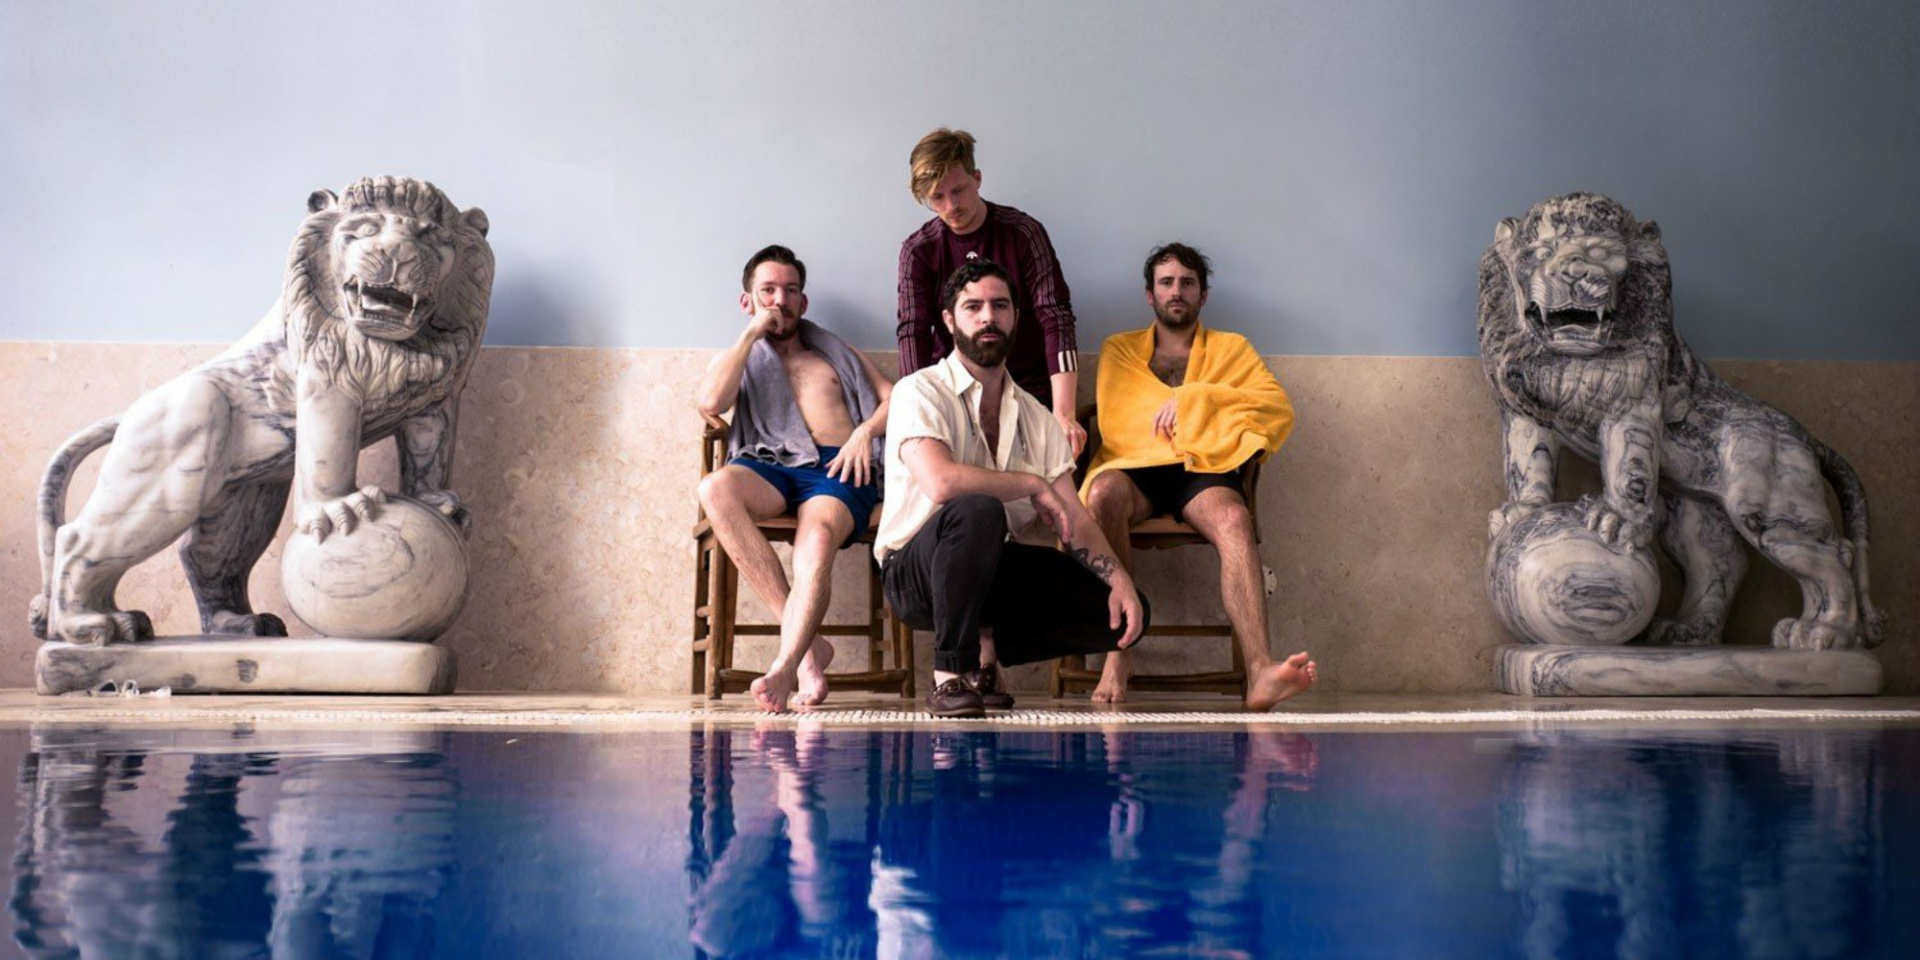 Foals shares vibrant new single 'On The Luna' – listen